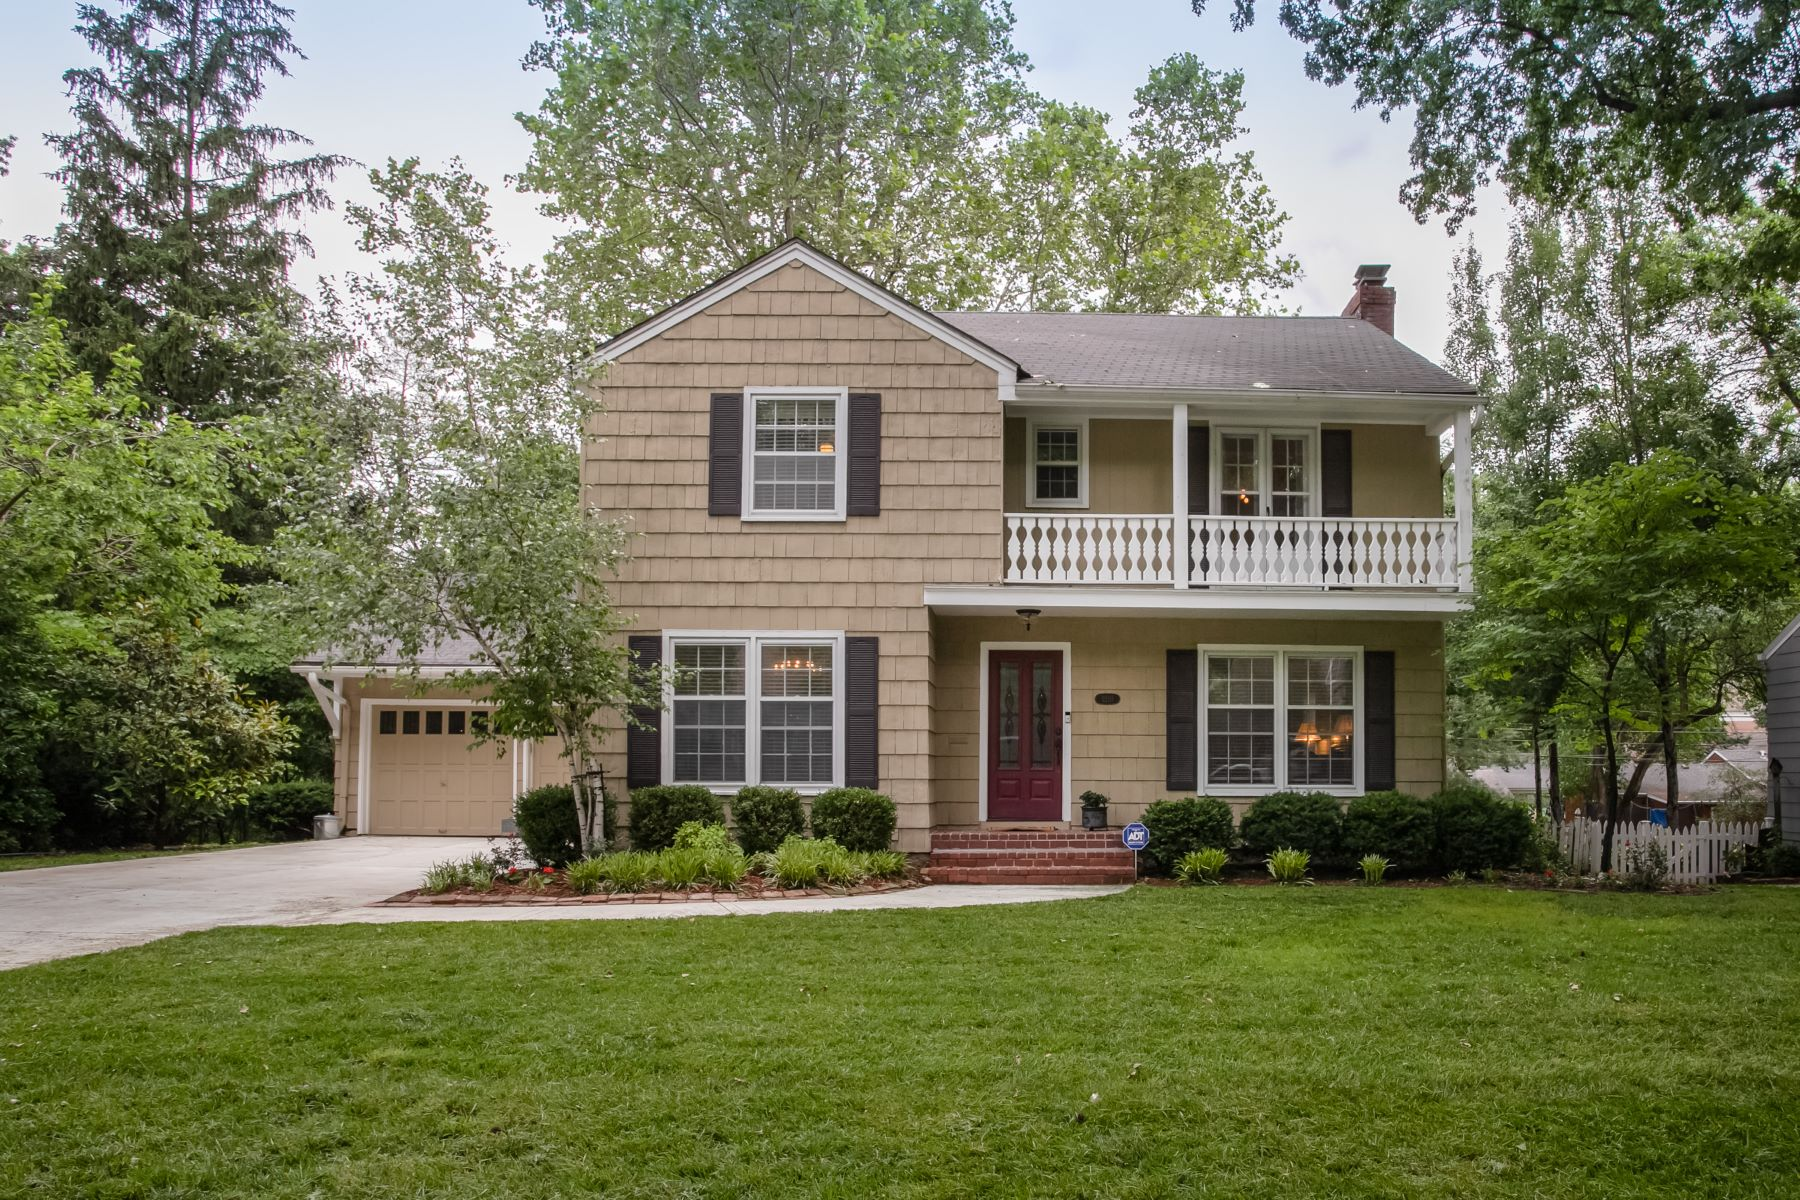 Single Family Homes for Sale at Classic Romanelli West two-story on picturesque Romany Road 1210 Romany Road Kansas City, Missouri 64113 United States